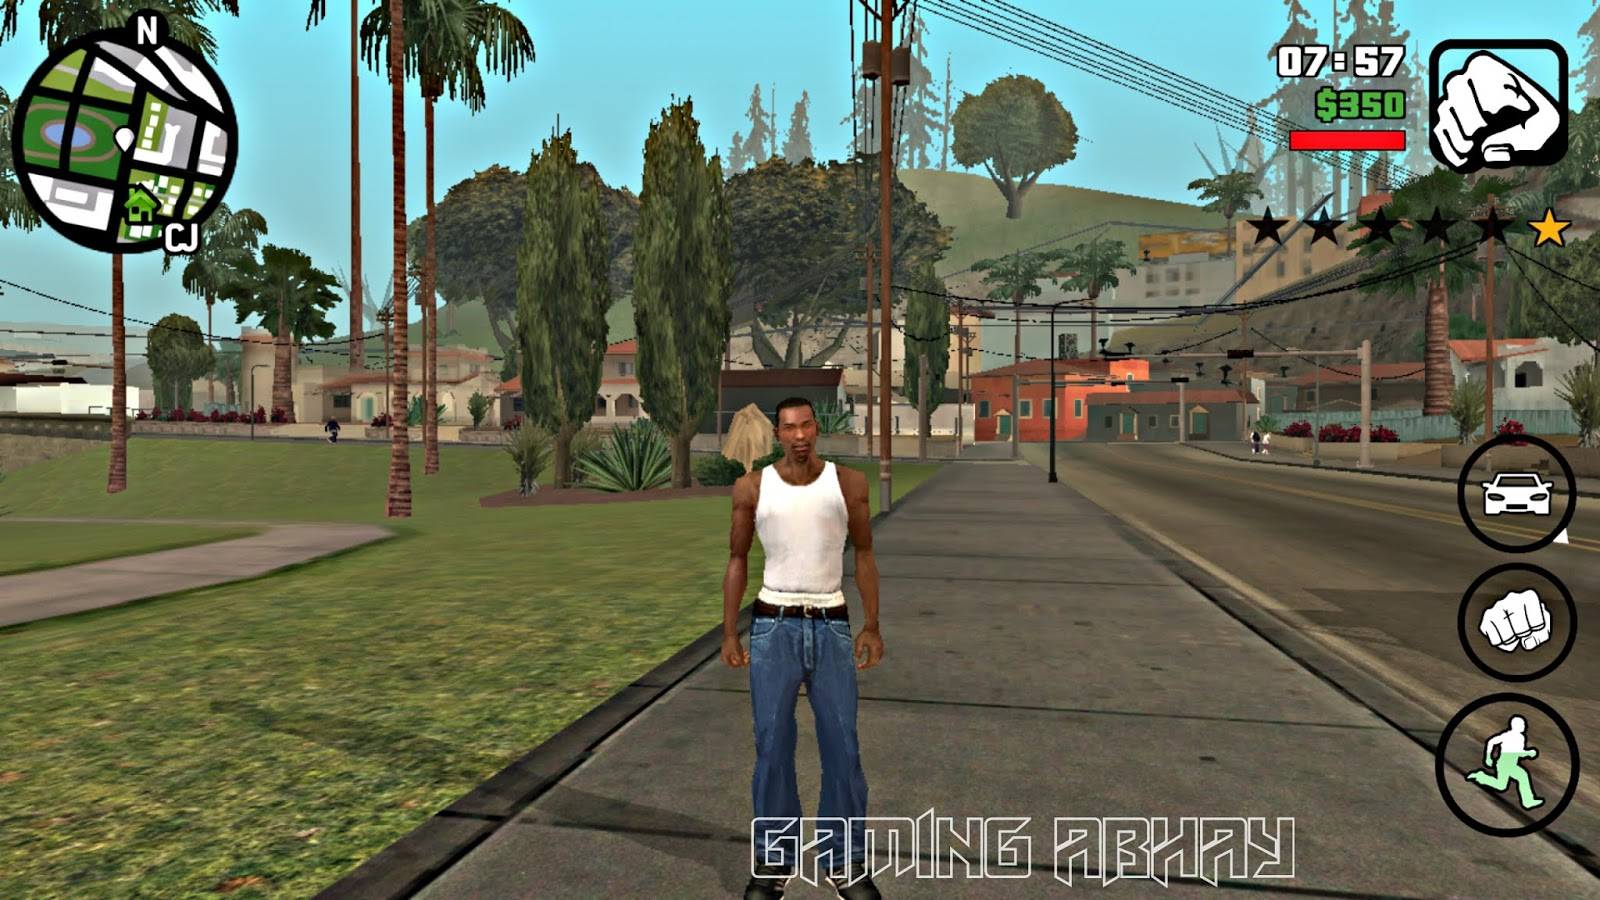 GTA San Andreas Lite is an open-world game where you take on the role of an ex-gangbanger. His name is Carl. He returns home after the death of his most to get the vengeance from the peopleThe obb data file size of the game is 2.4 GB. The apk file has been  highly compressed to just 200 MB!